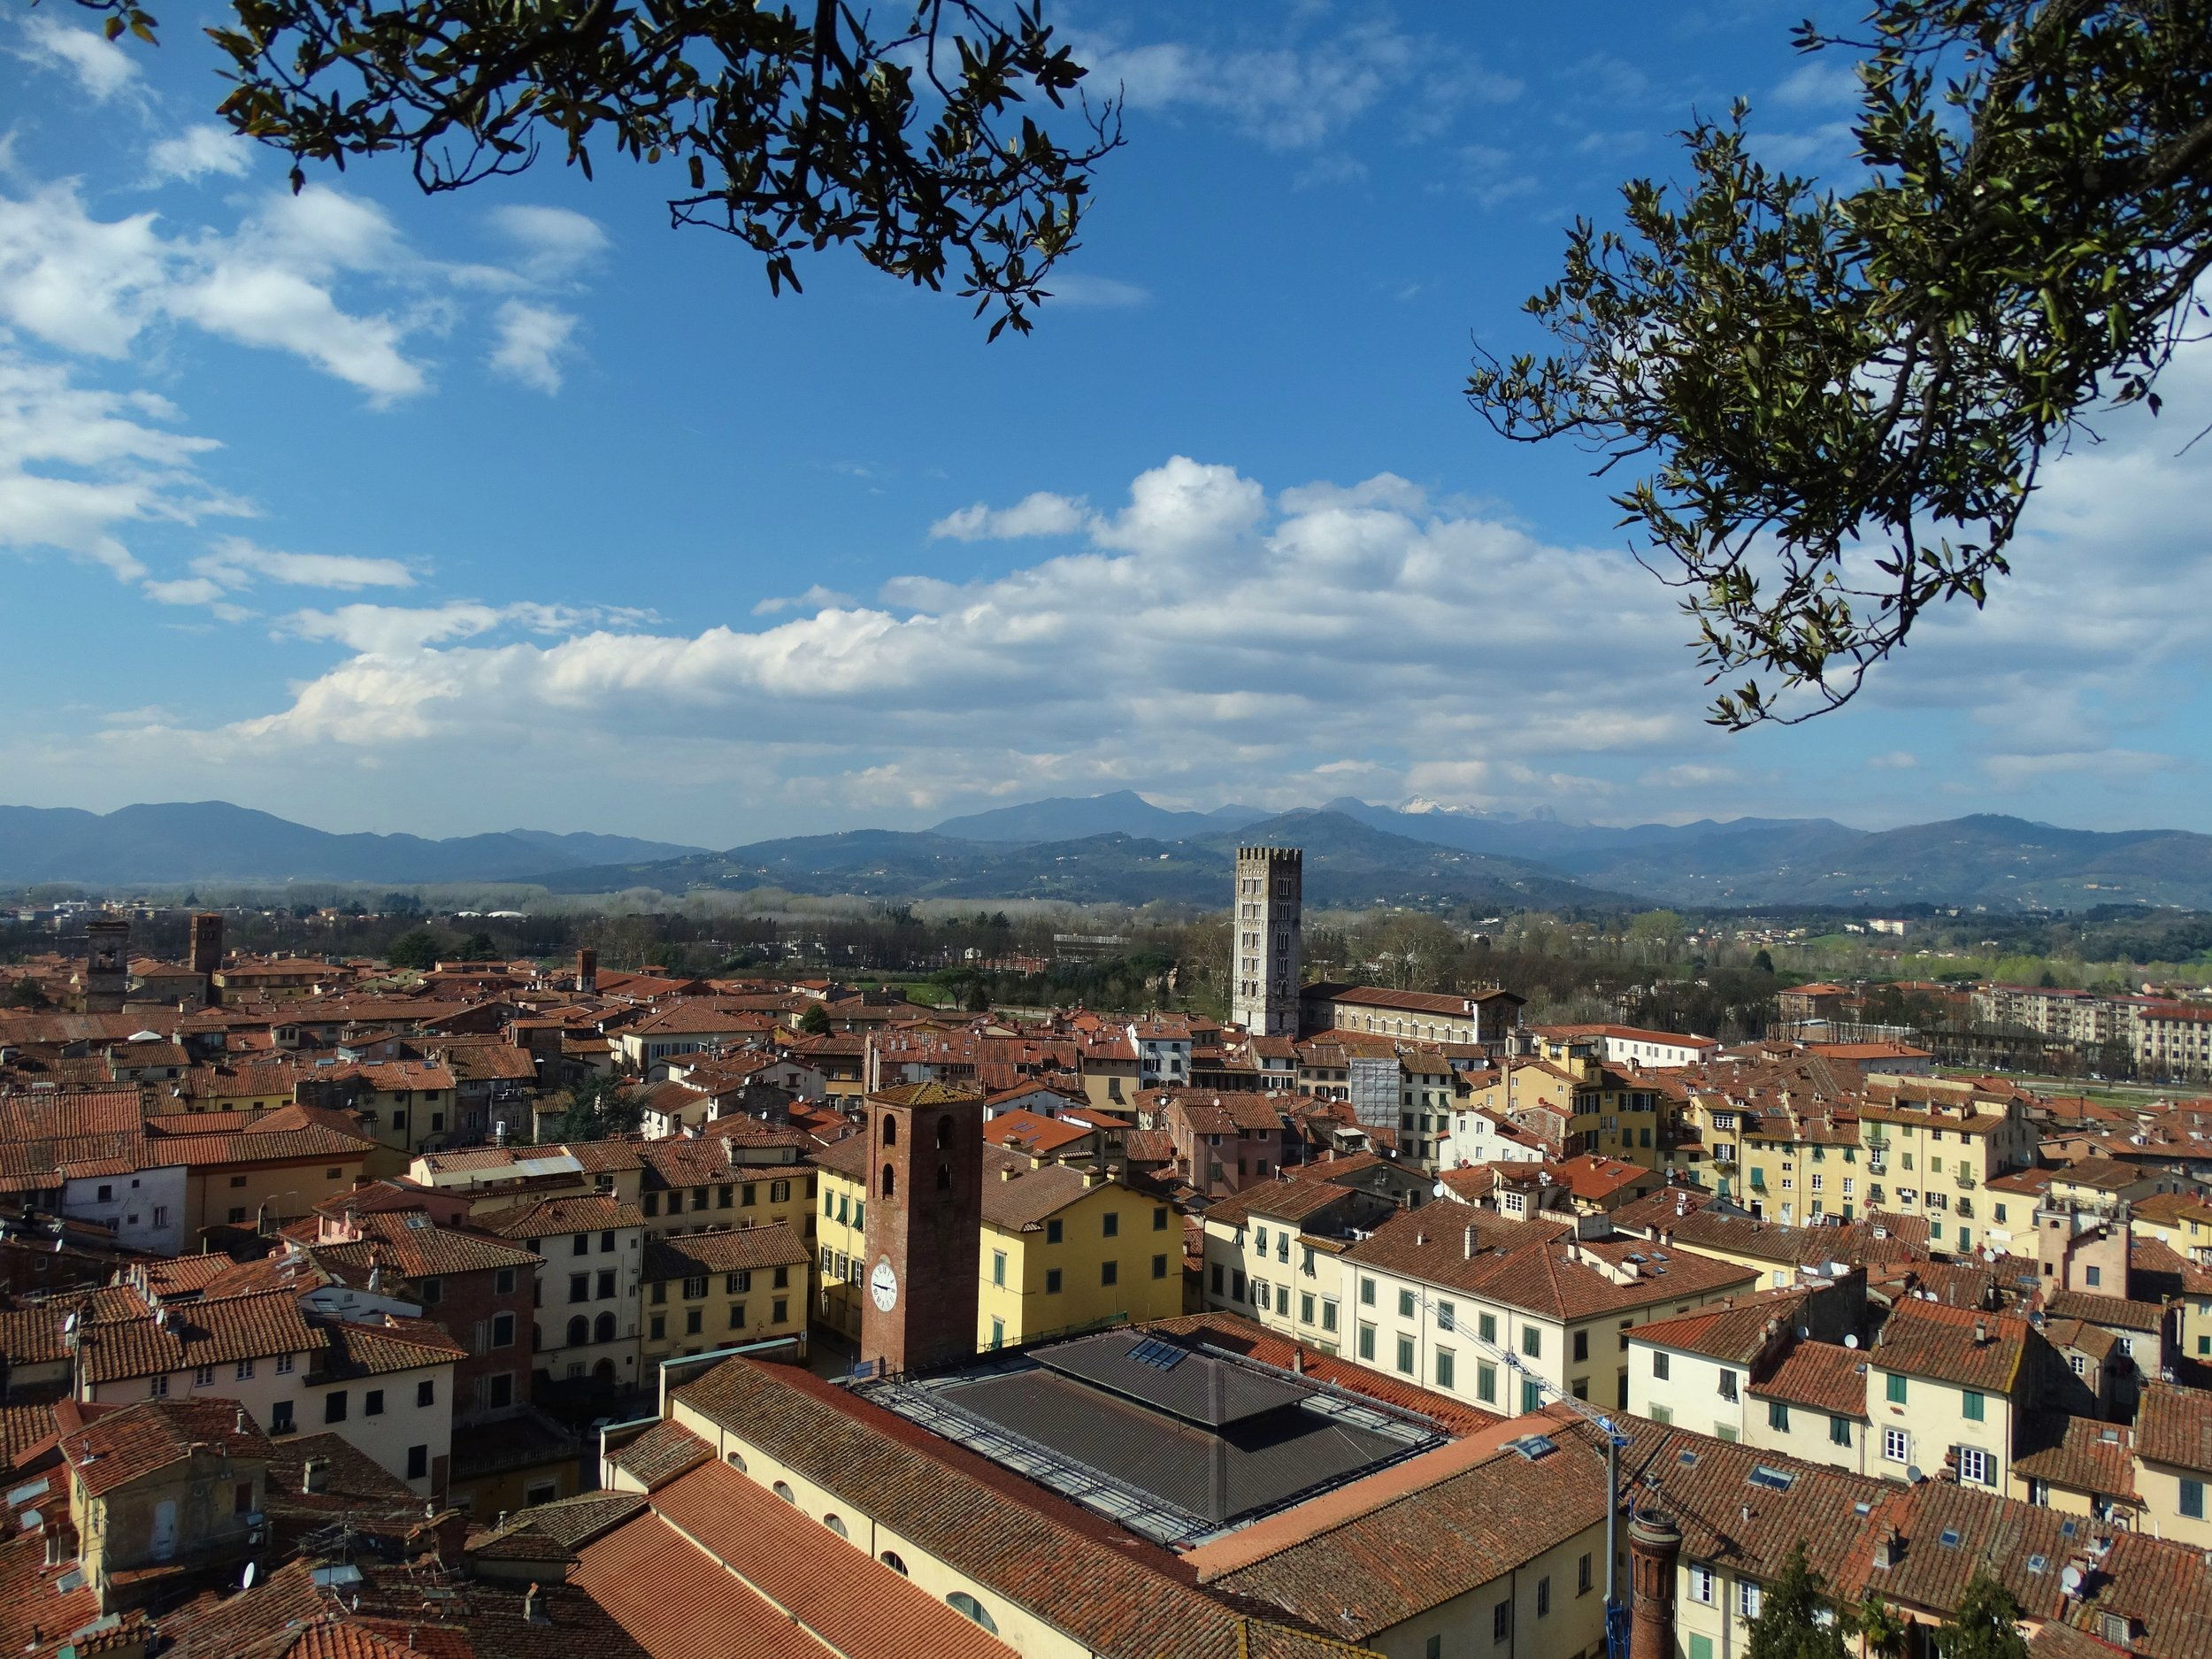 The view from the top of the Guinigi Tower